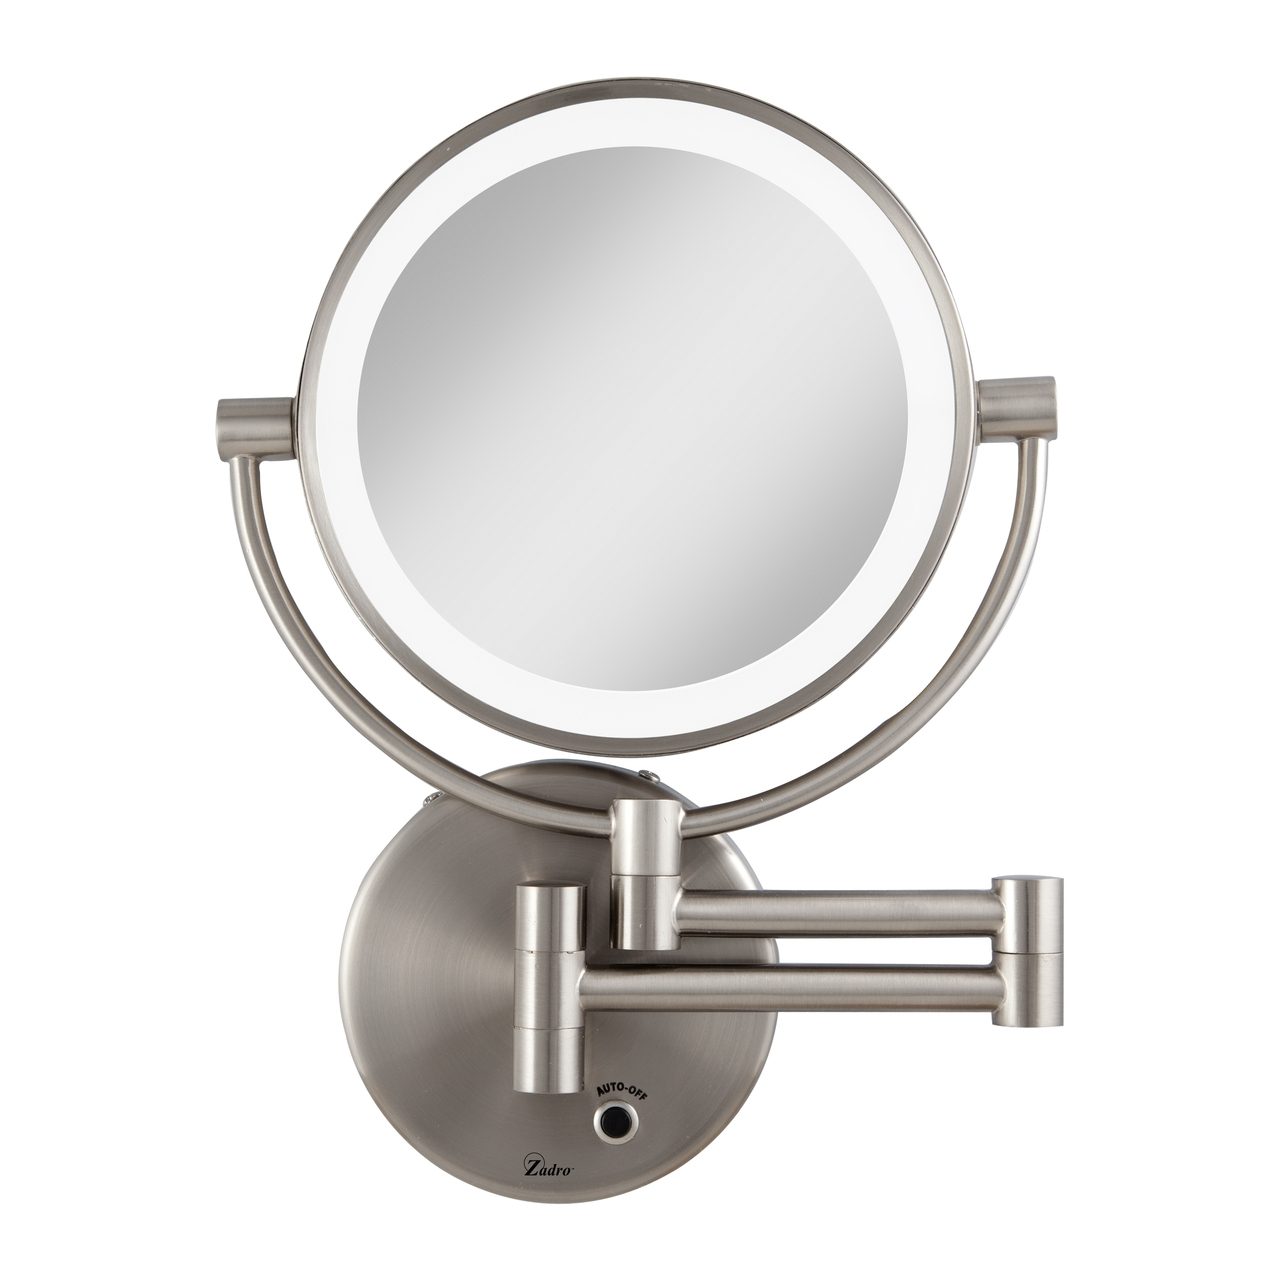 Cordless Lighted Wall Mounted Makeup Mirror Cordless Lighted Wall Mounted Makeup Mirror mirrors tools spa and equipment 1280 X 1280